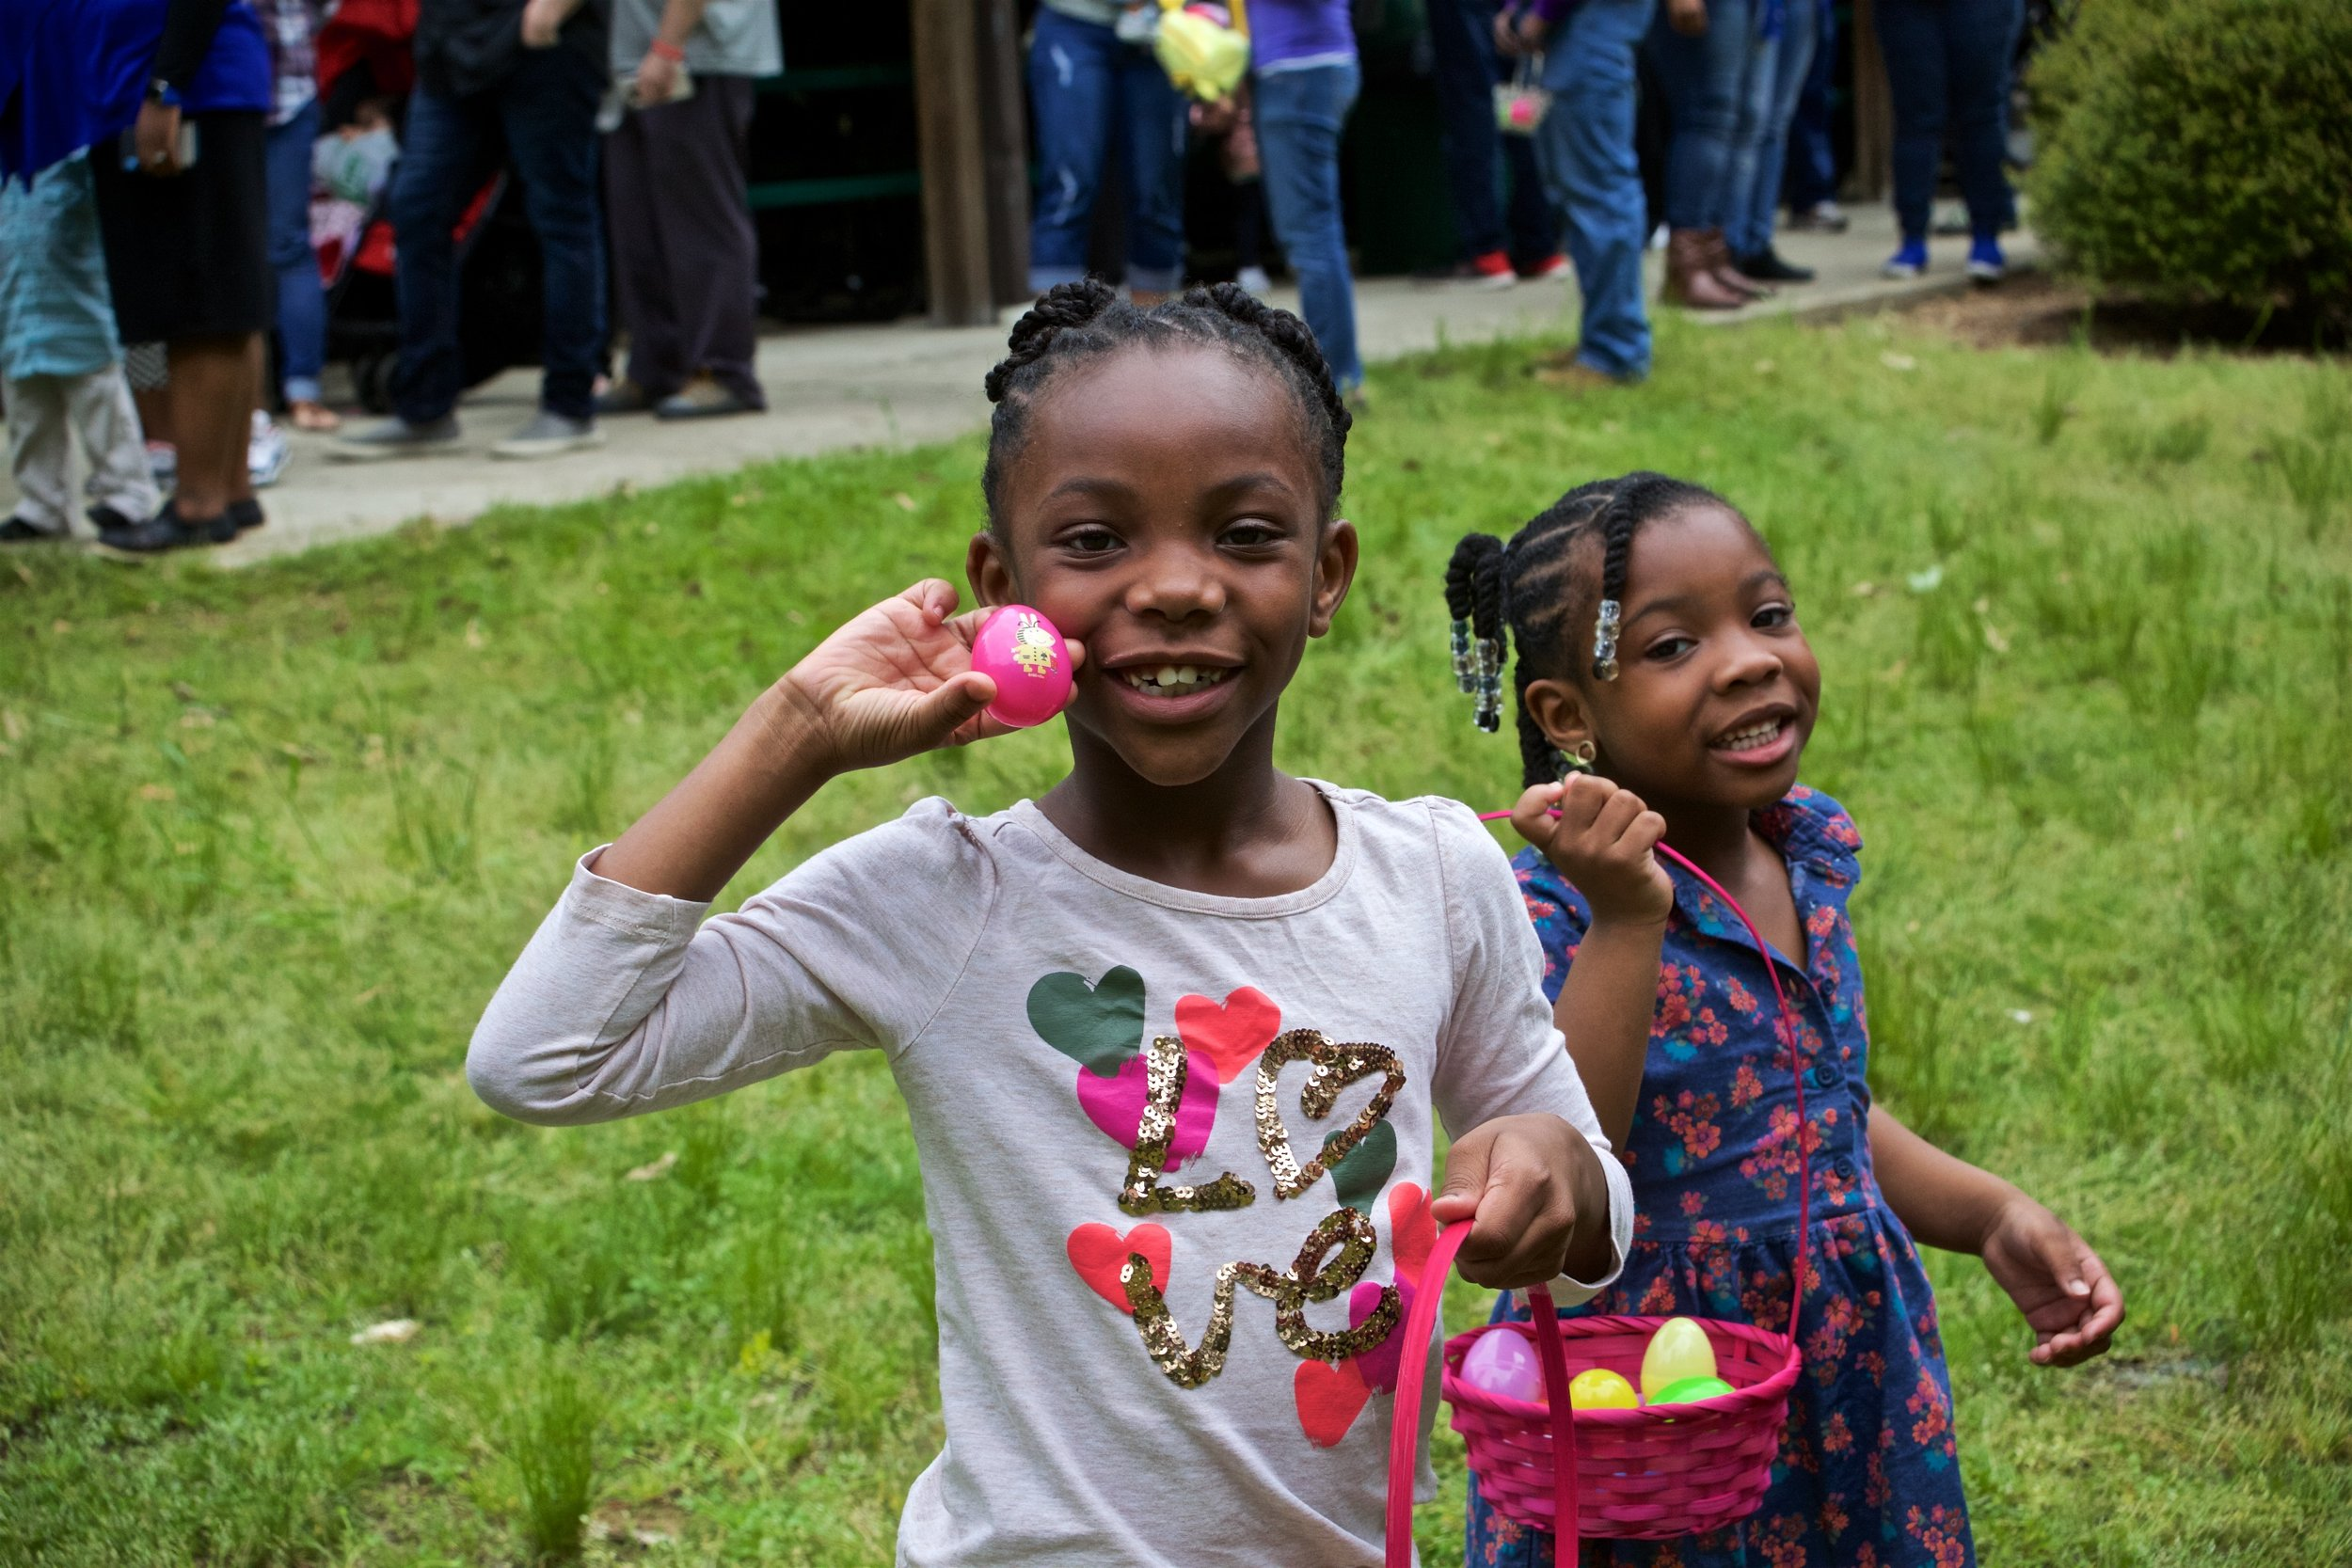 2019.4.20 Raleigh NPHC Easter Egg Hunt by StanChambersJr Photography 32.jpg